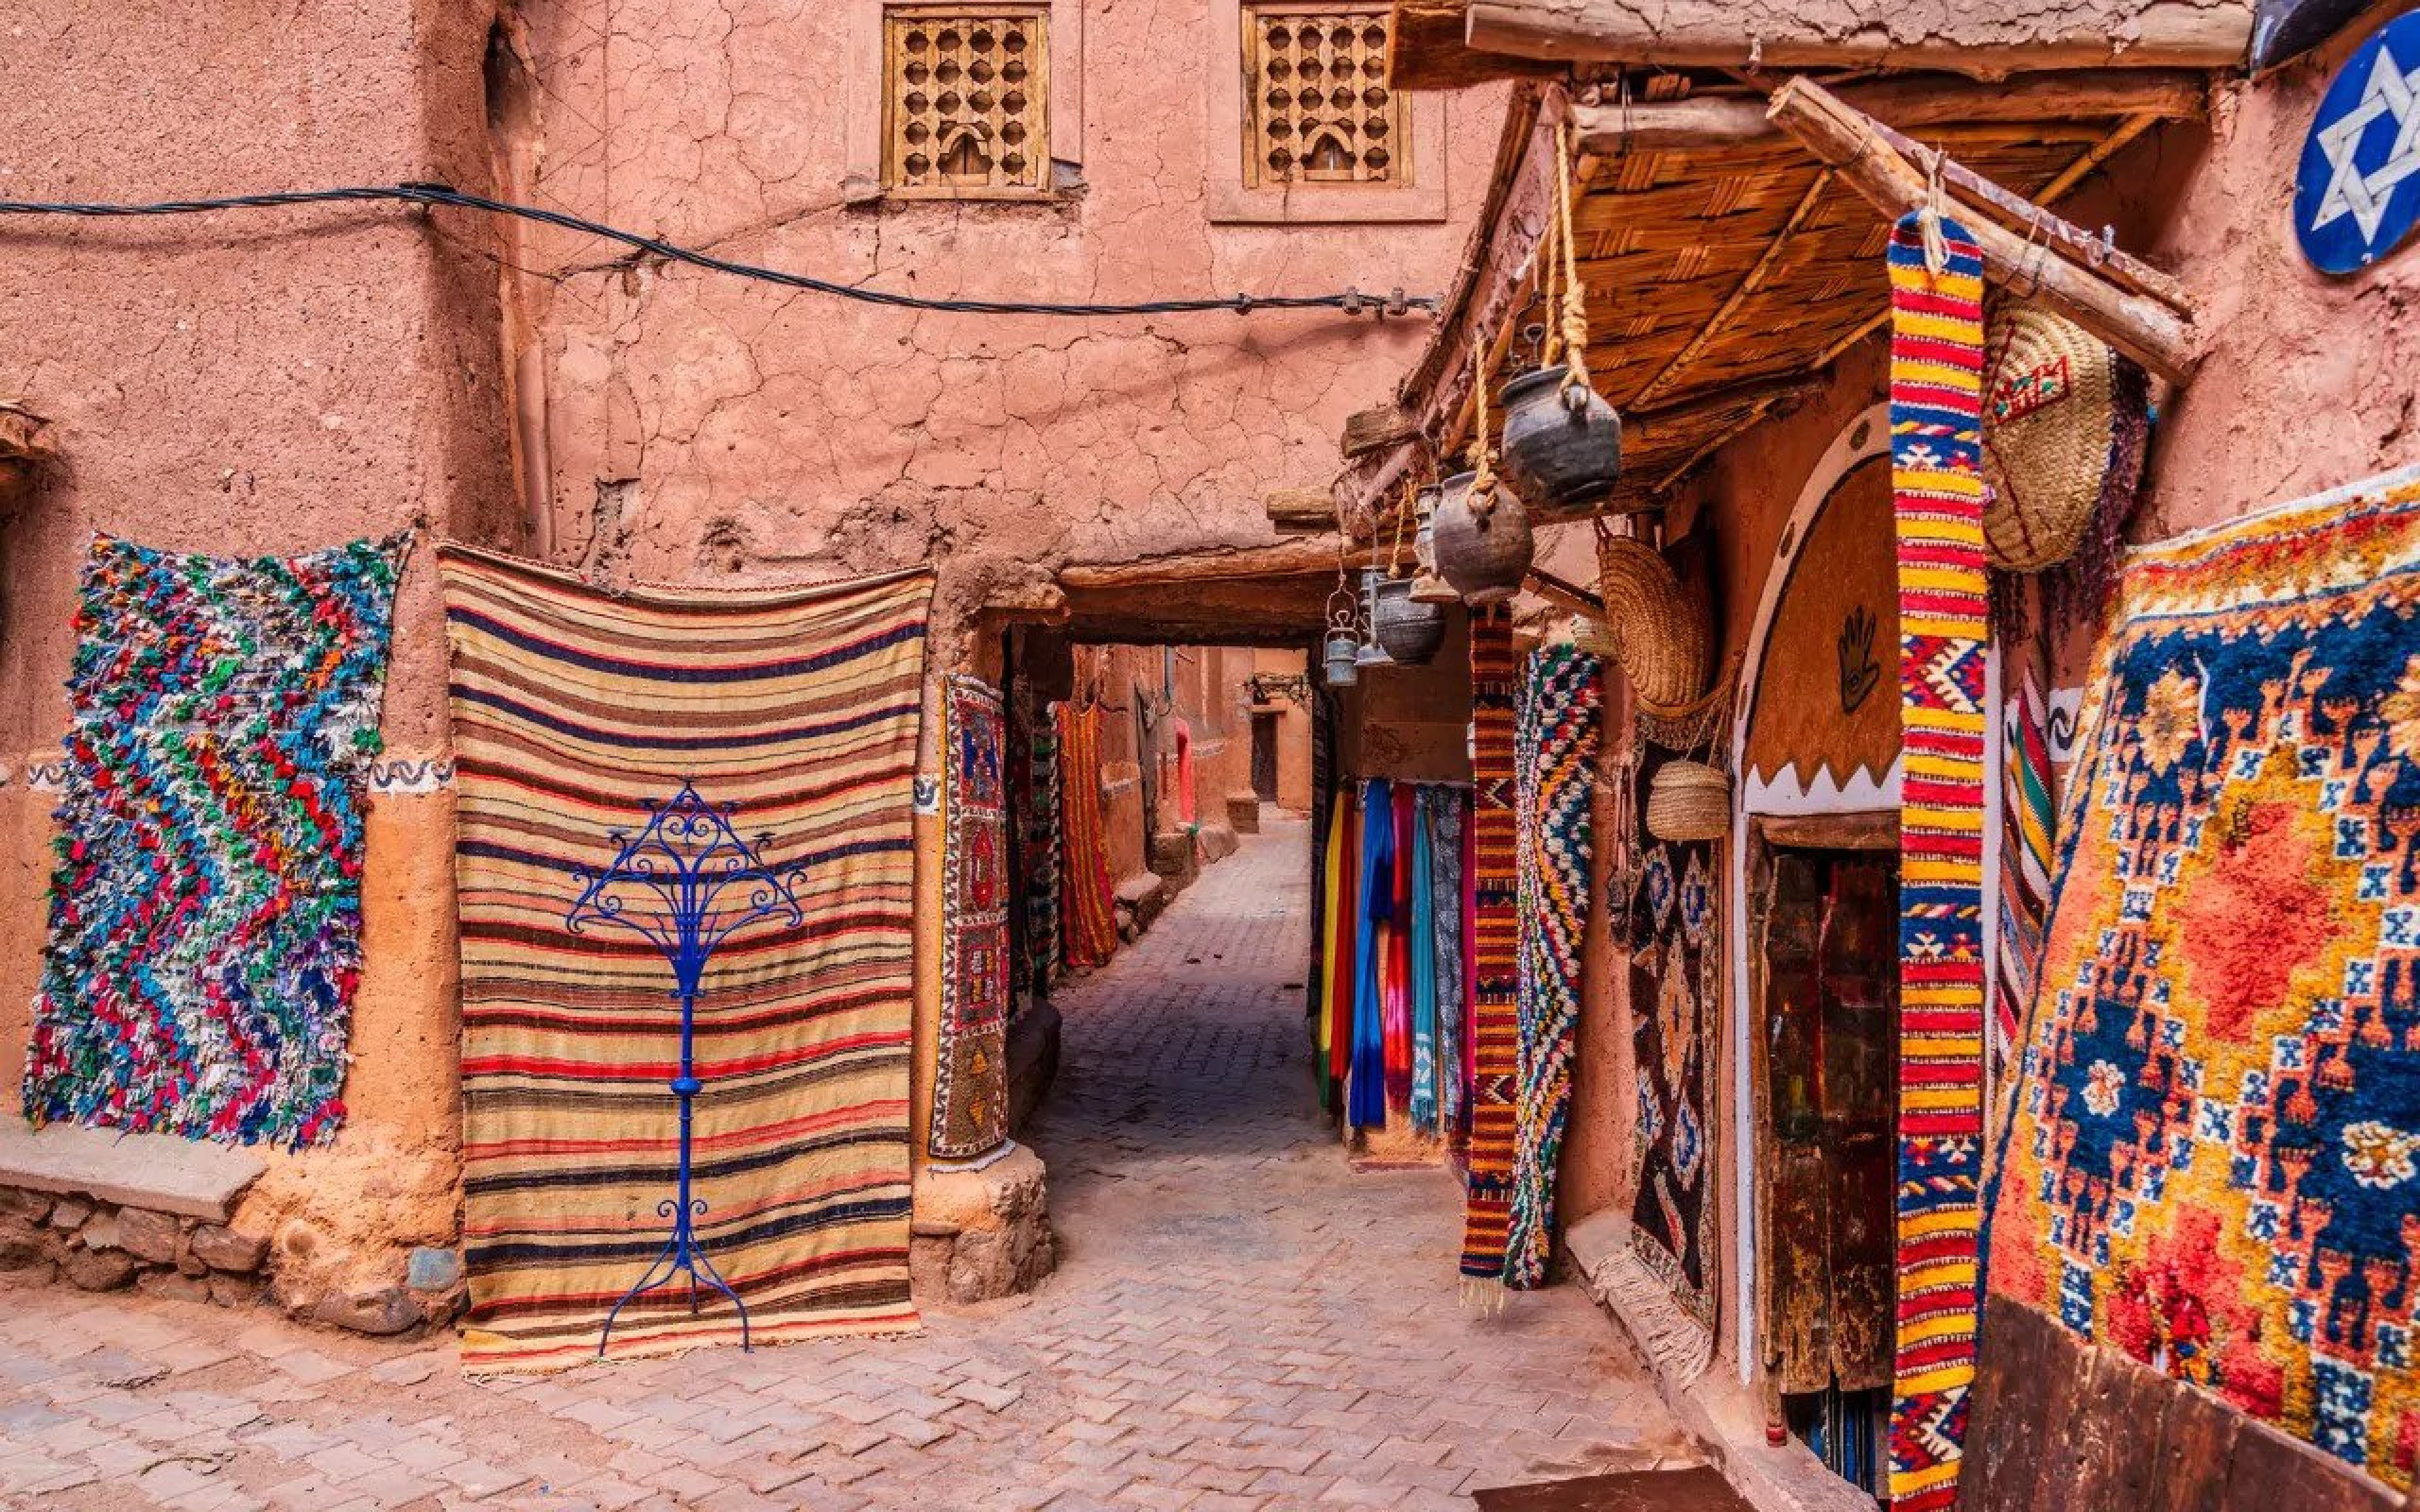 7 Nights All Inclusive Marrakech for £451pp